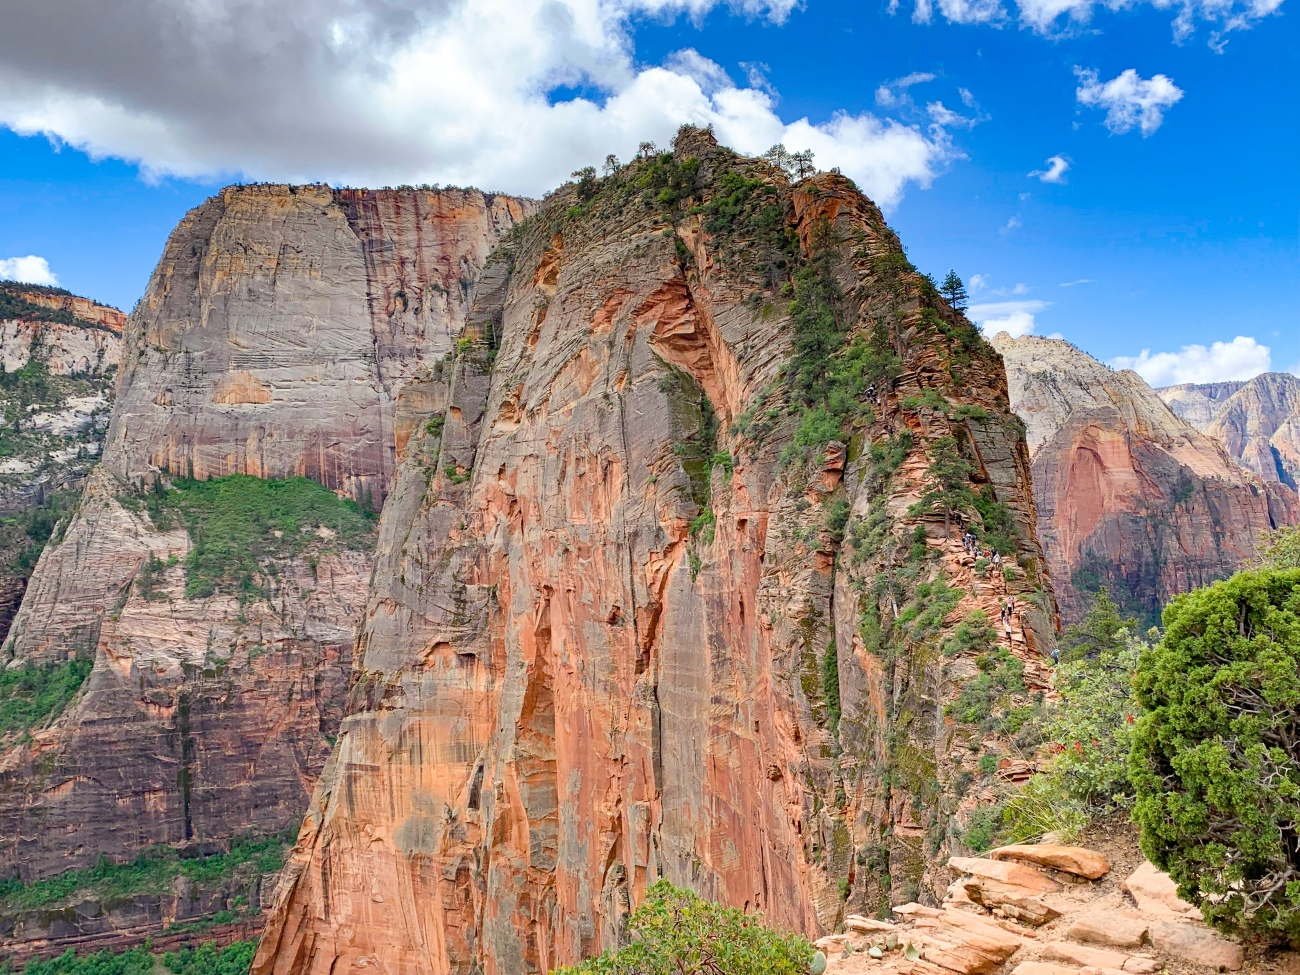 Zion national park, virgin river, landscape, sandstone cliffs, Utah National Parks, beautiful nature, Angel's Landing Summit, adventure hike, beautiful view